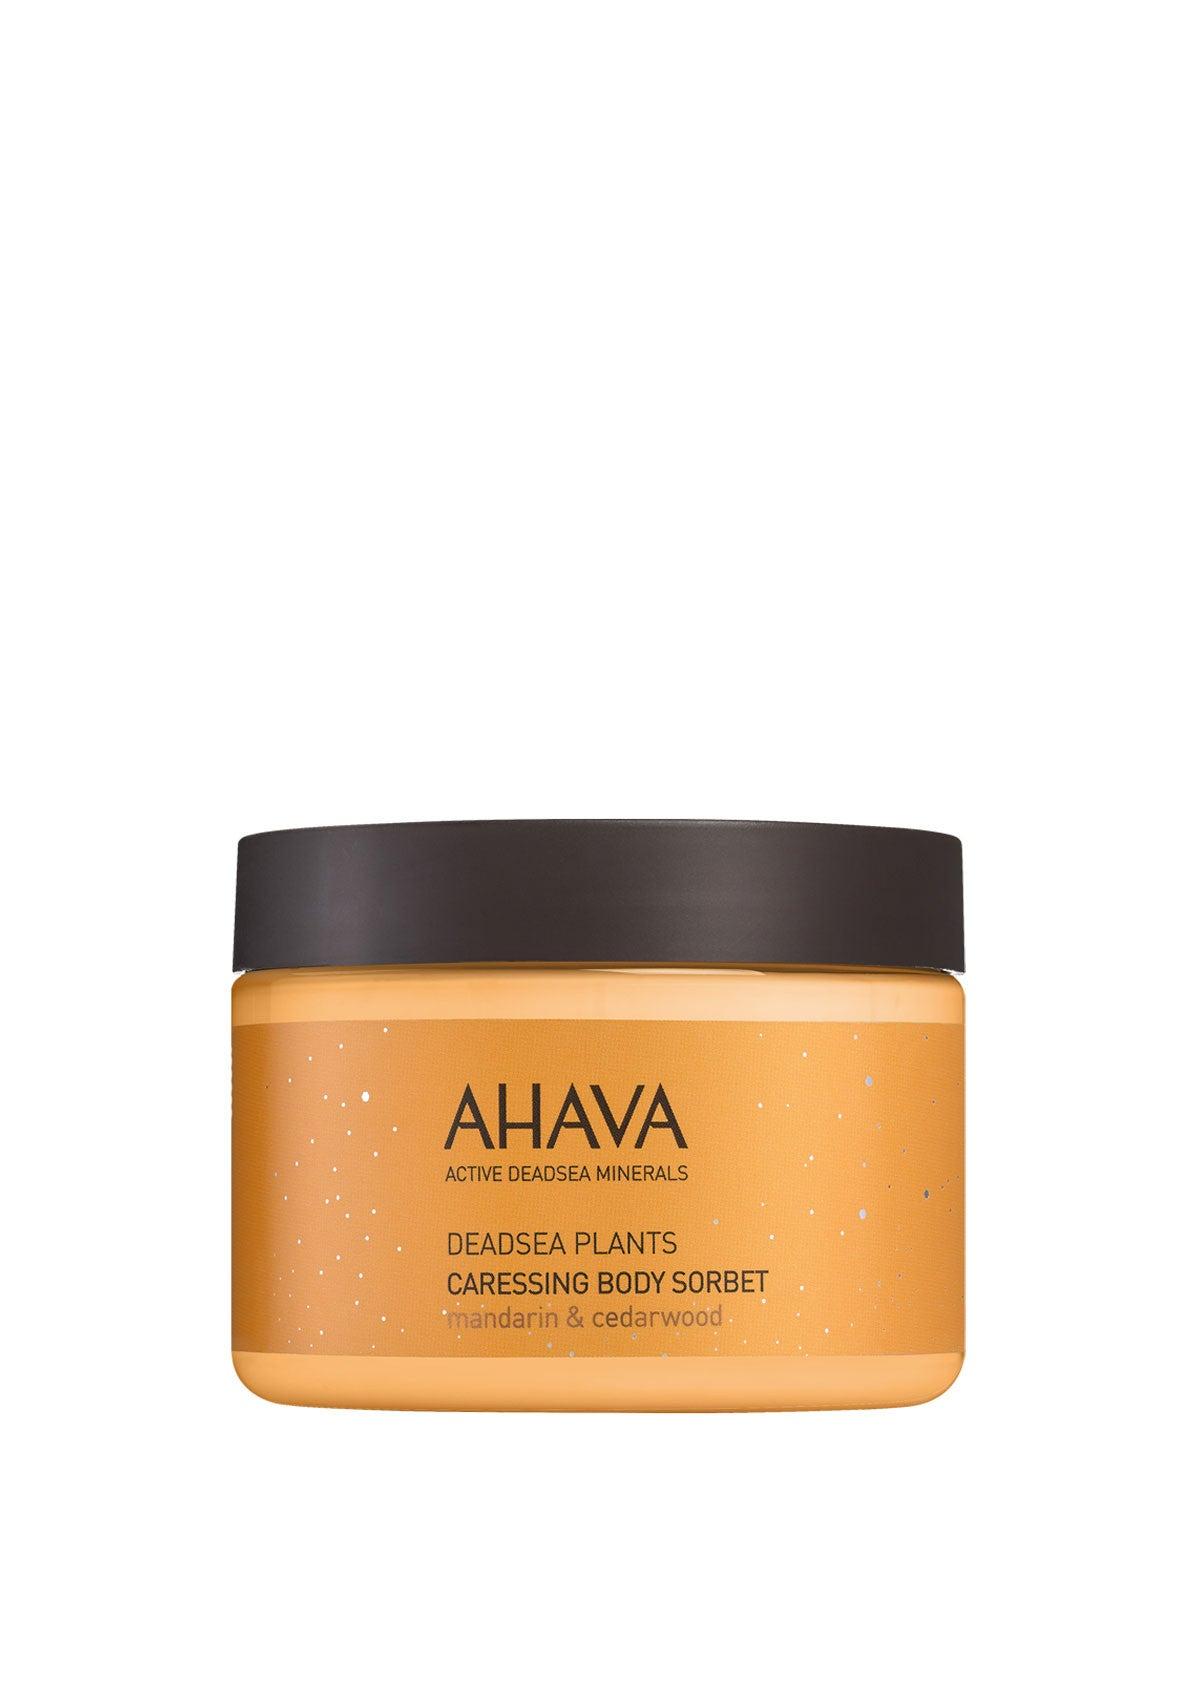 AHAVA - Caressing Body Sorbet - DeadSeaShop.co.uk